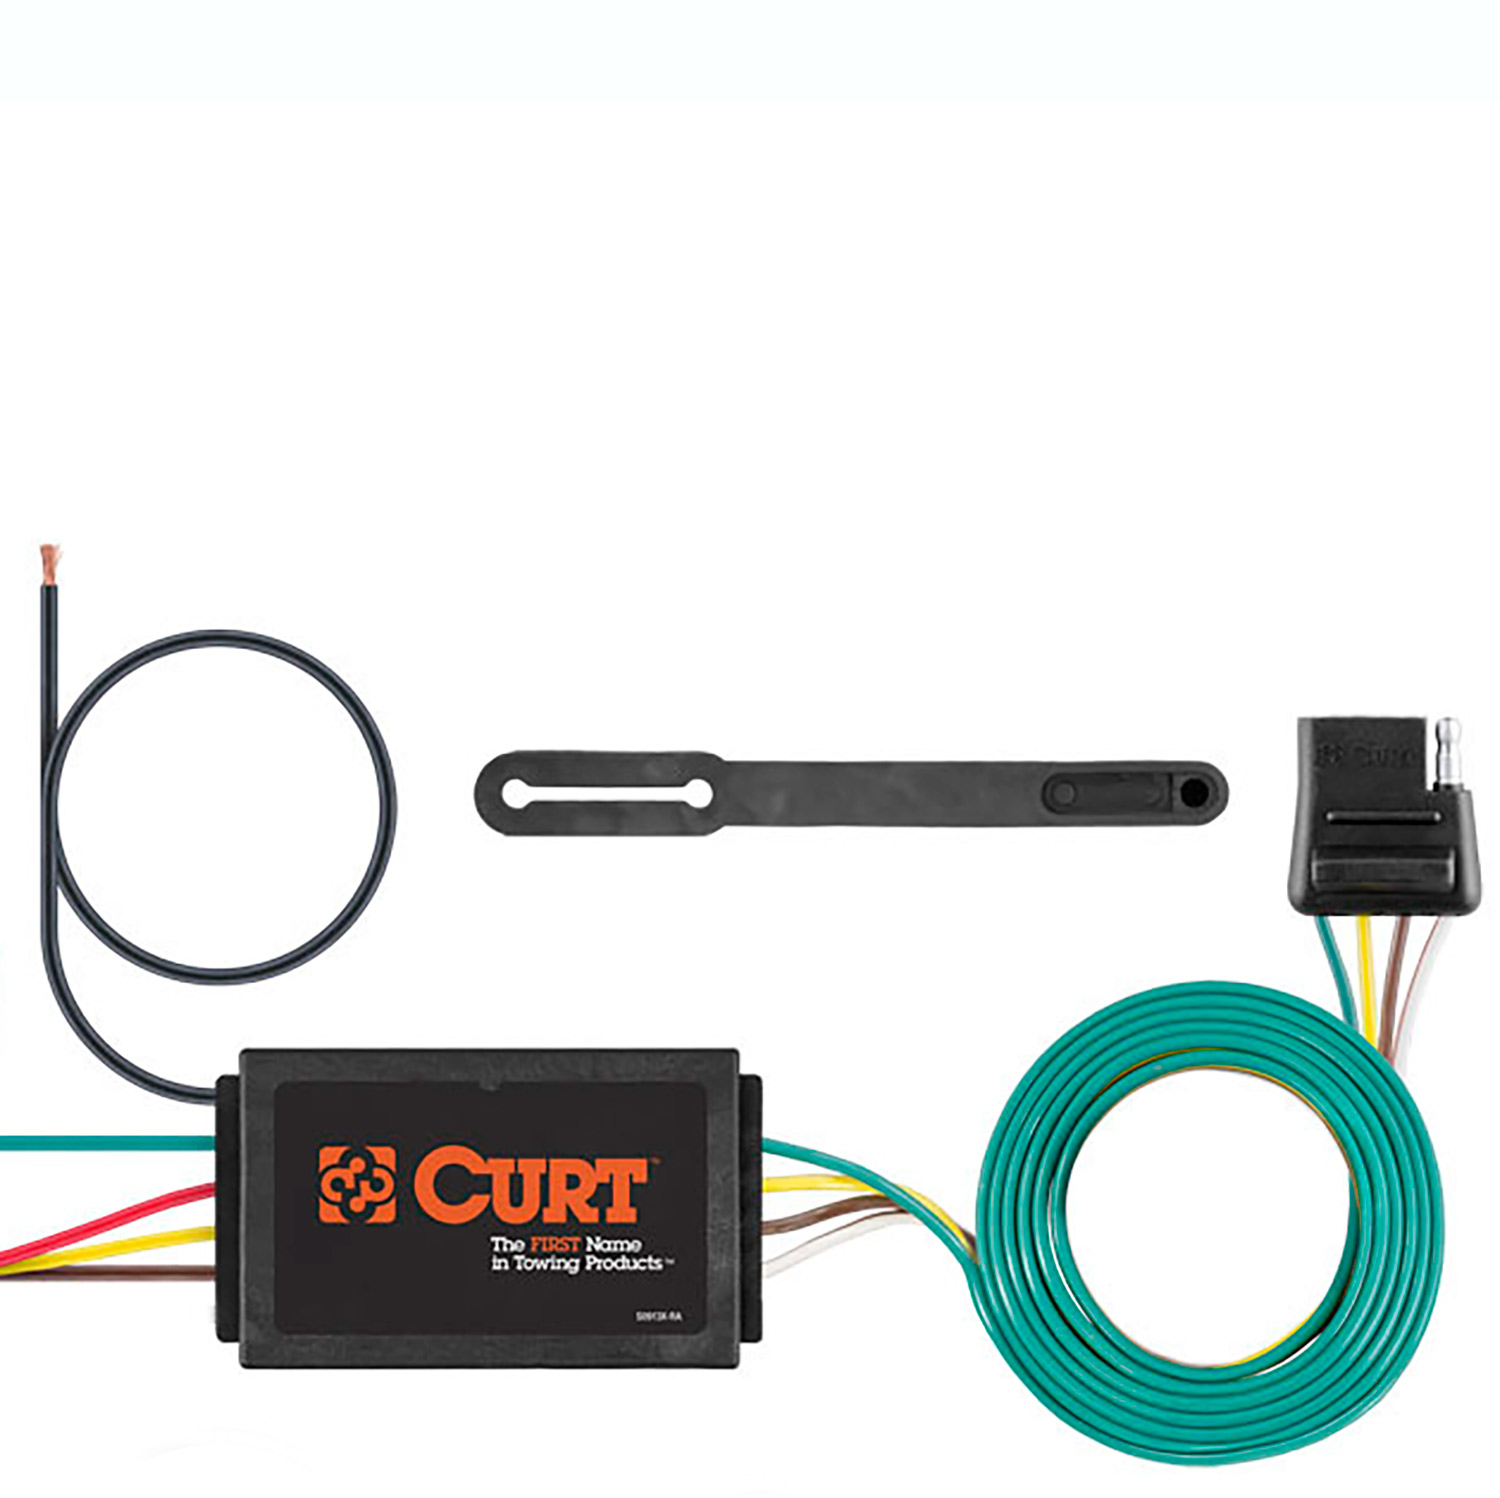 Curt T Connector Vehicle To Trailer Custom Wiring Harness For G35 Cover Infiniti Sedan